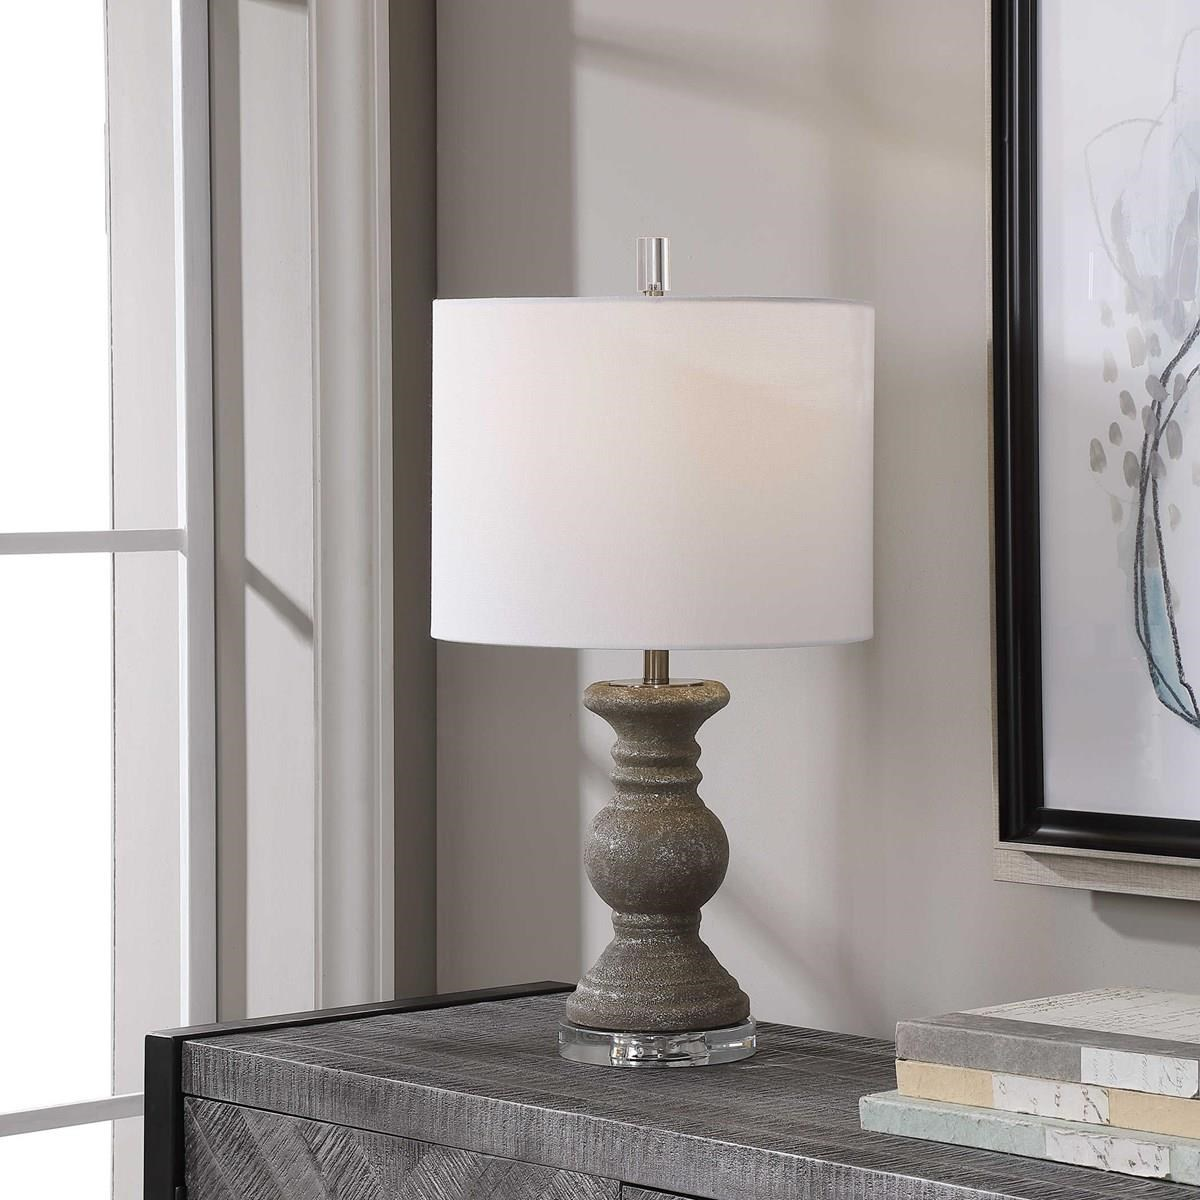 Table Lamps JORDYN TABLE LAMP by Unique at Walker's Furniture